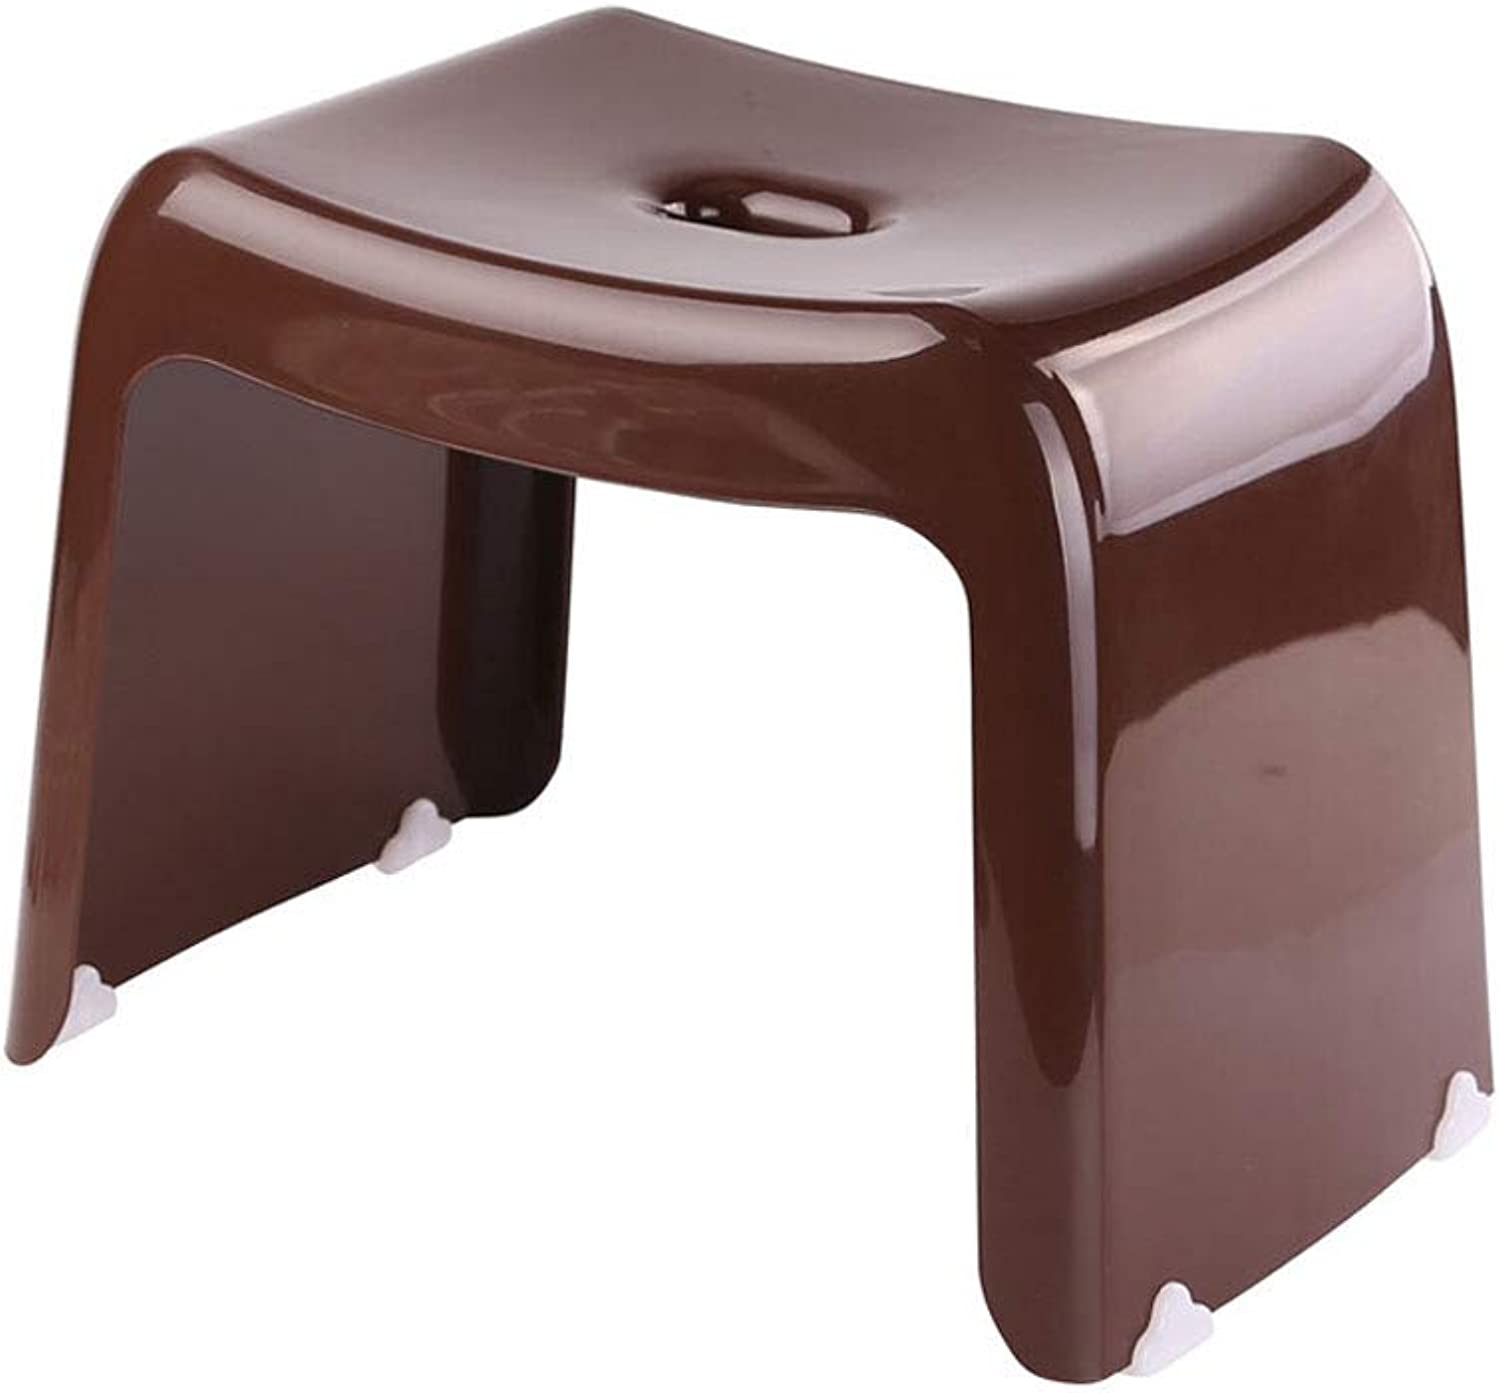 FH Household Footstool, Bathroom Anti-Skid Bench Fashion Creative Step Stool 36×25×30cm, Multi-color Selection (color   Brown)